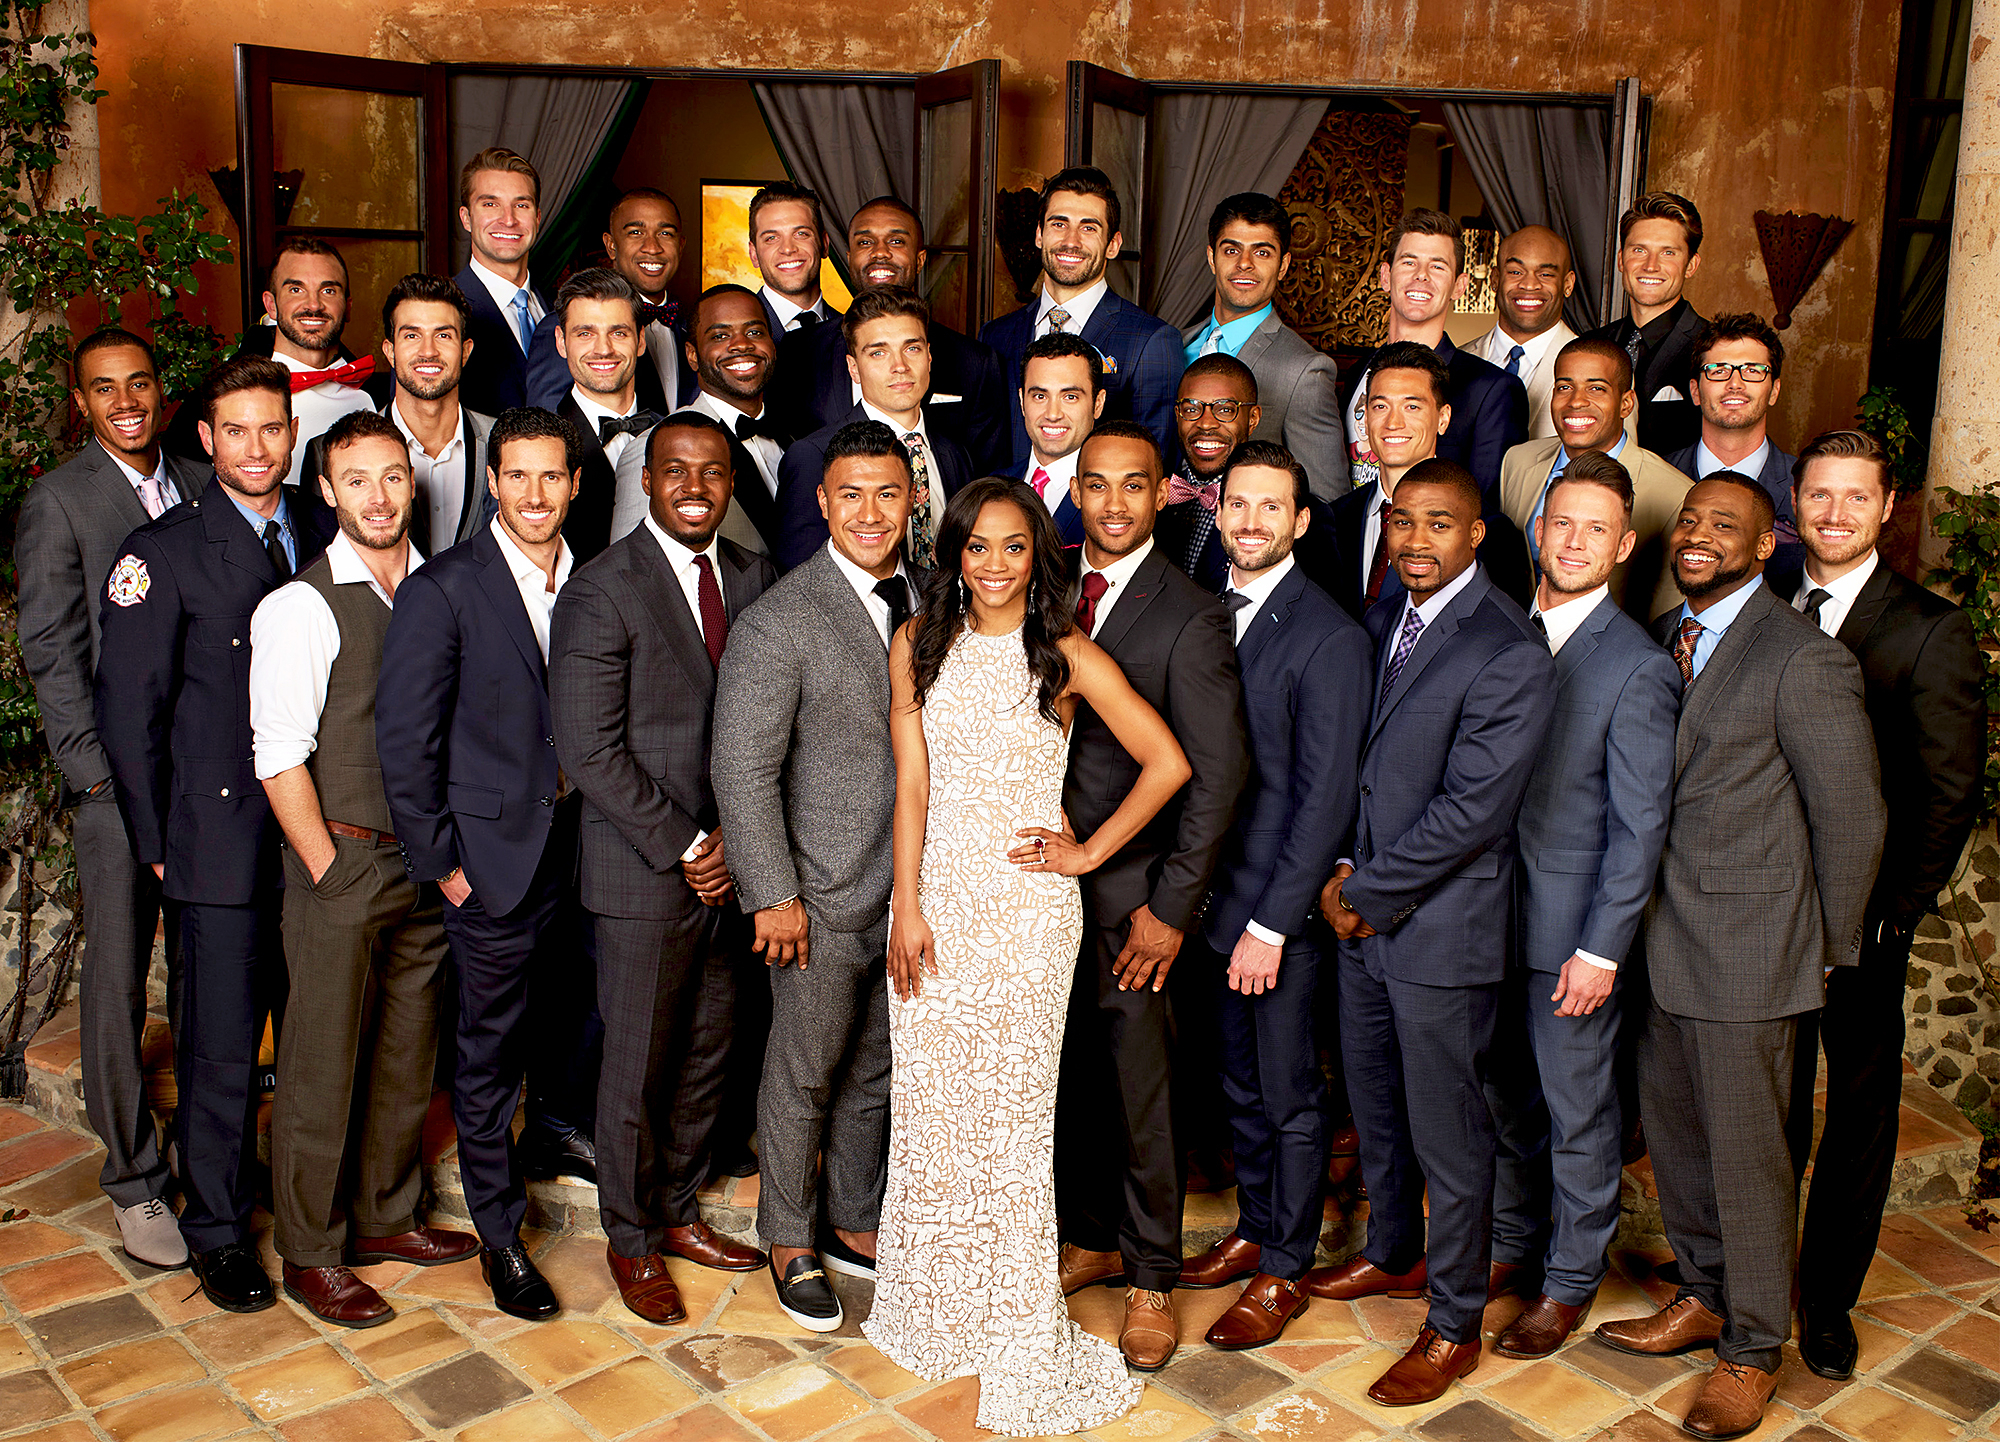 Peter Kraus Reveals Why He Turned Down The Bachelor